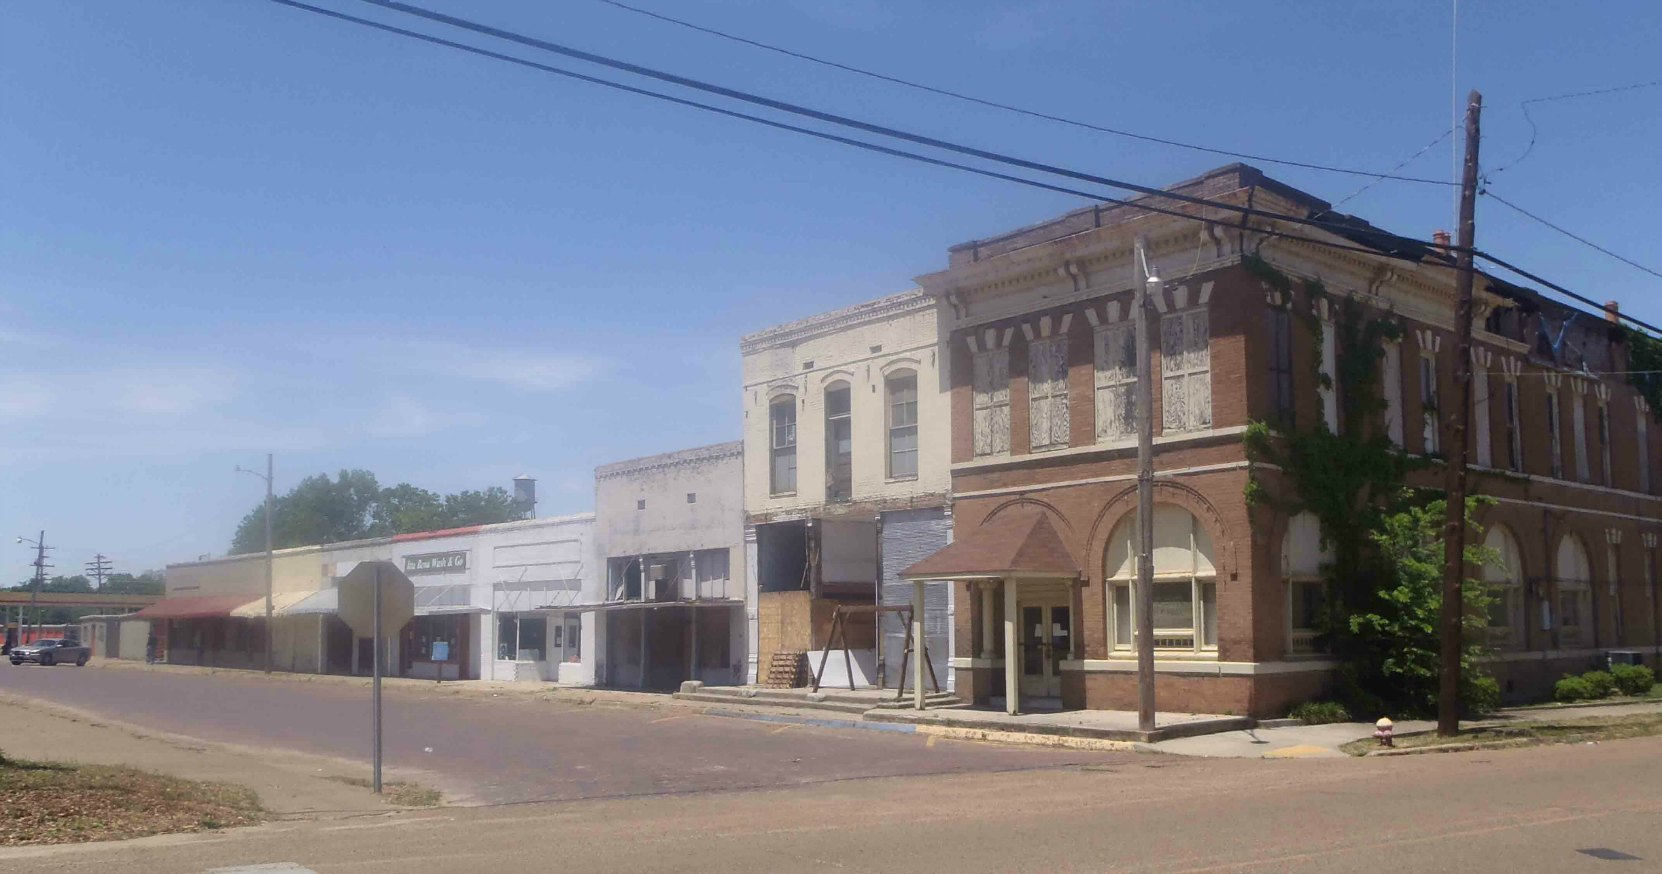 City Hall, Humphreys Street, Itta Bena, Leflore County, Mississippi